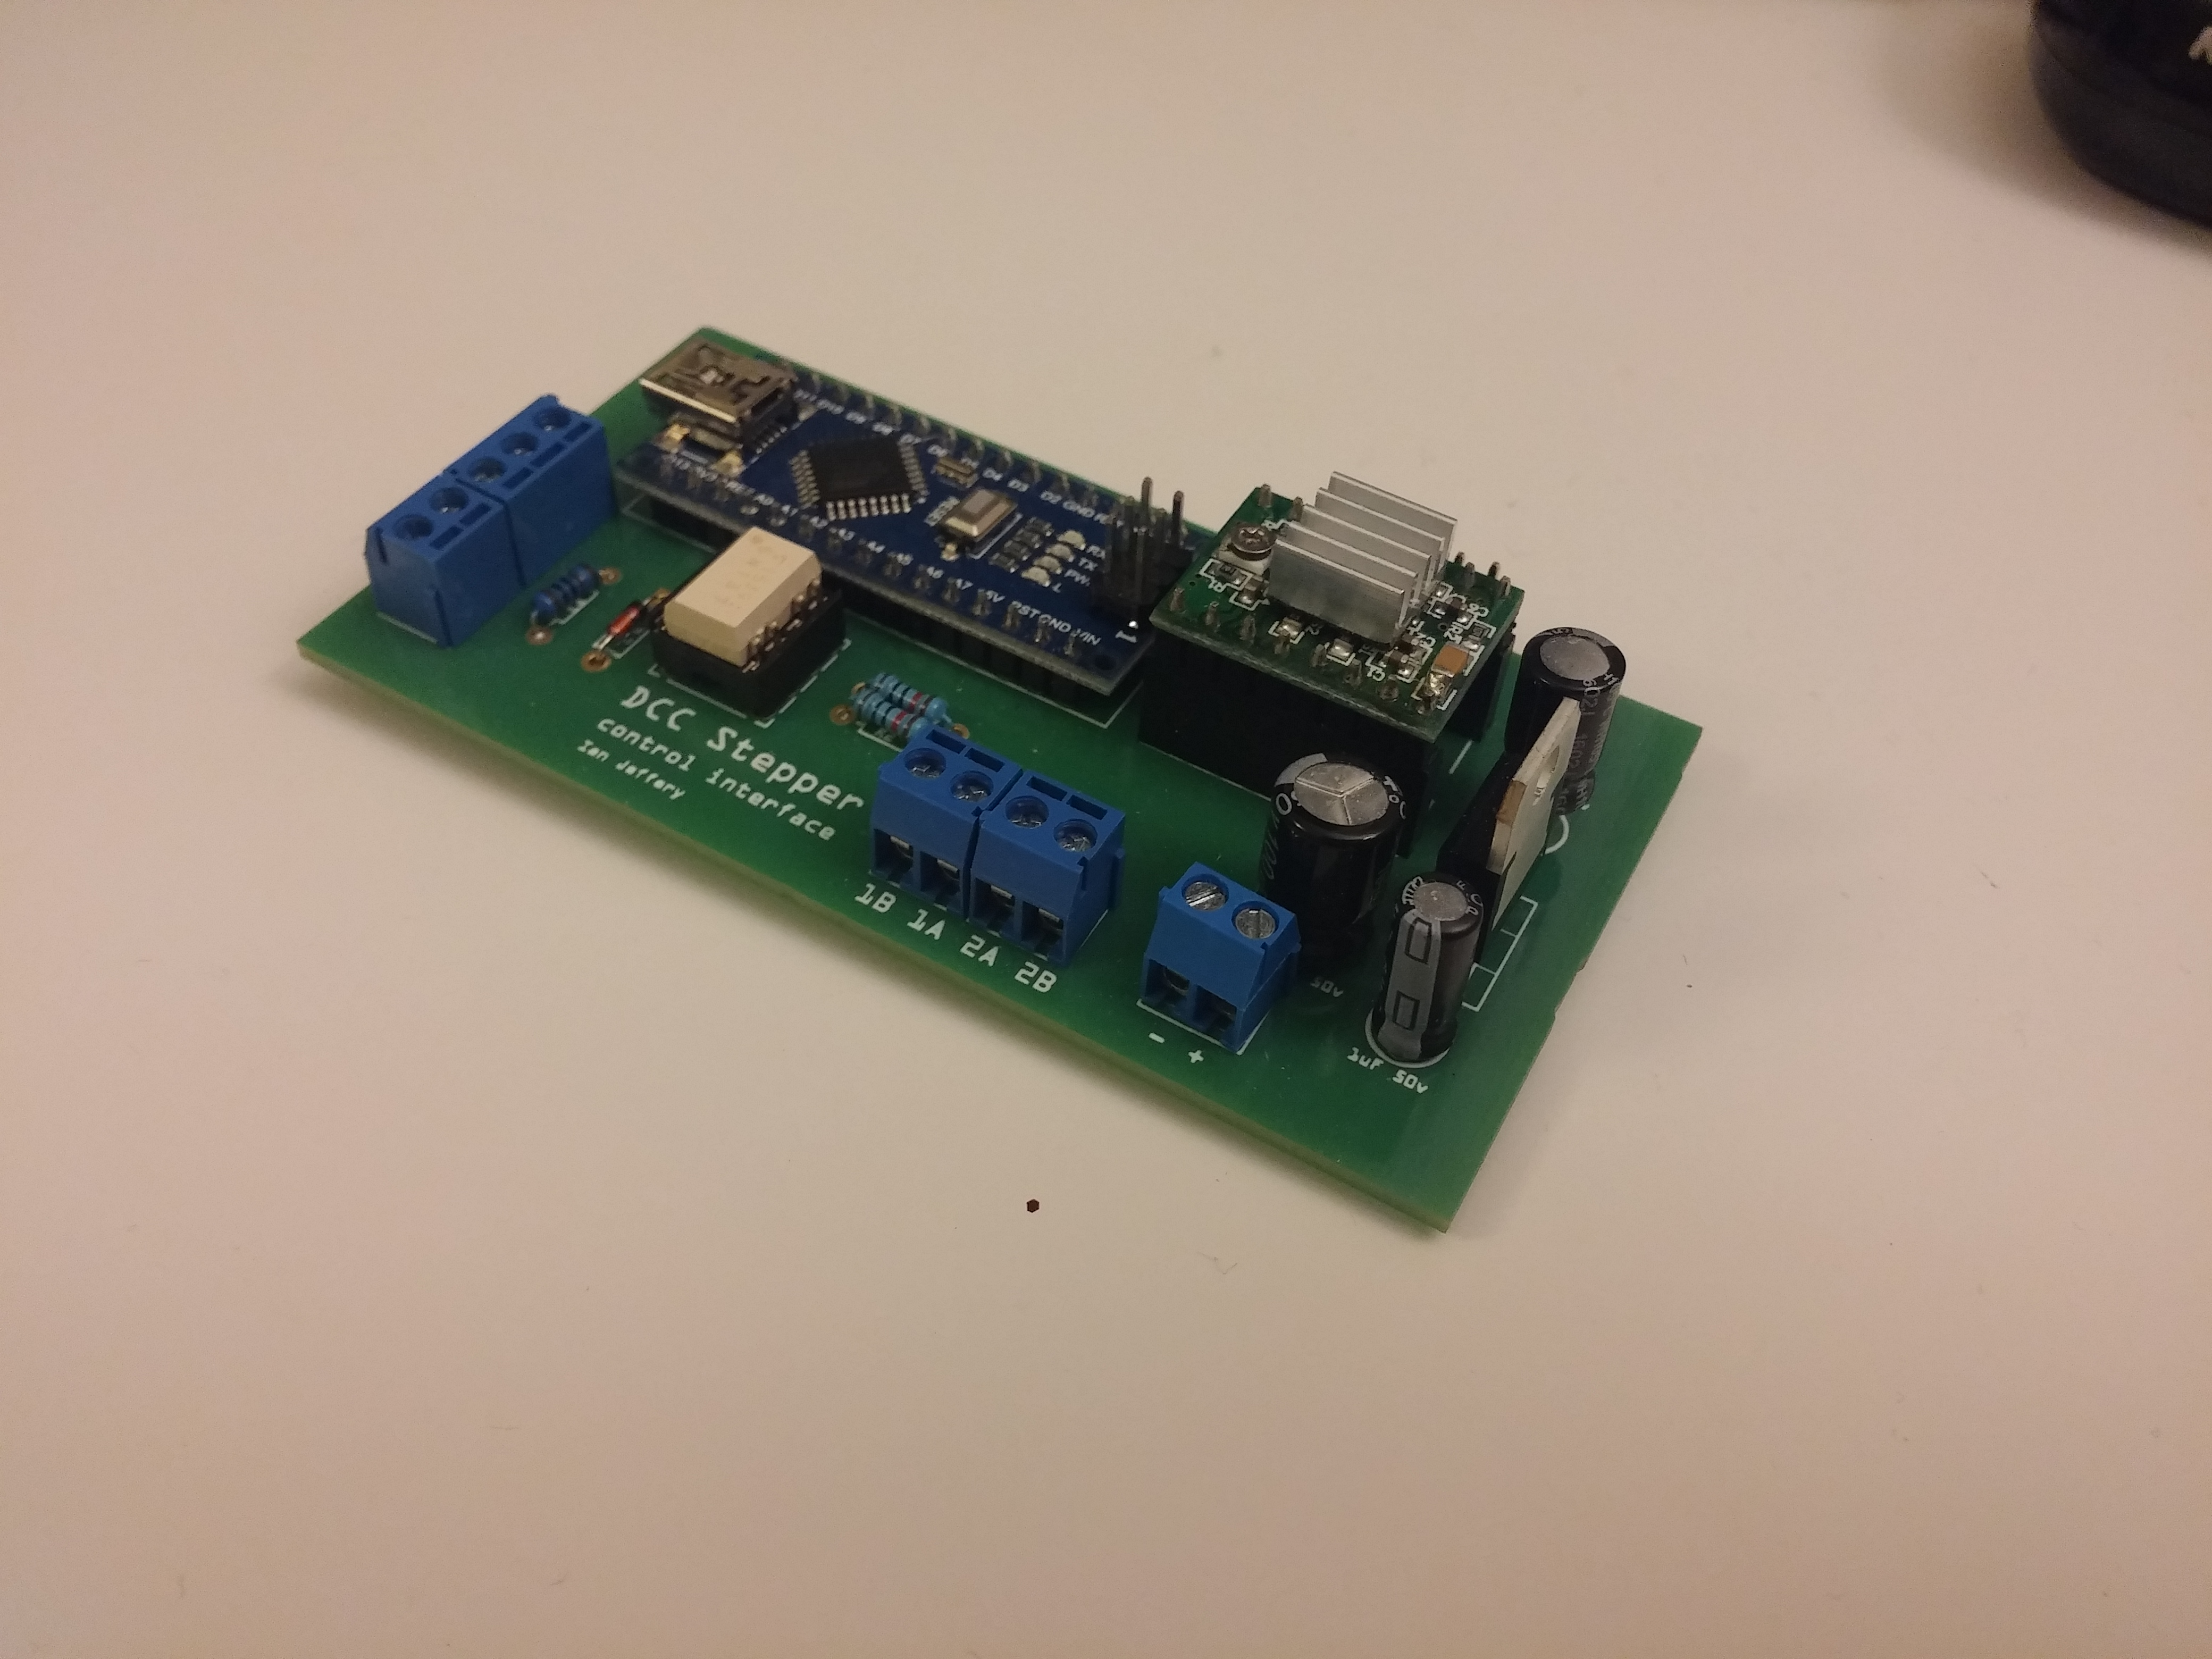 Model Railway DCC Turntable Accessory Decoder for Arduino Nano - Kit